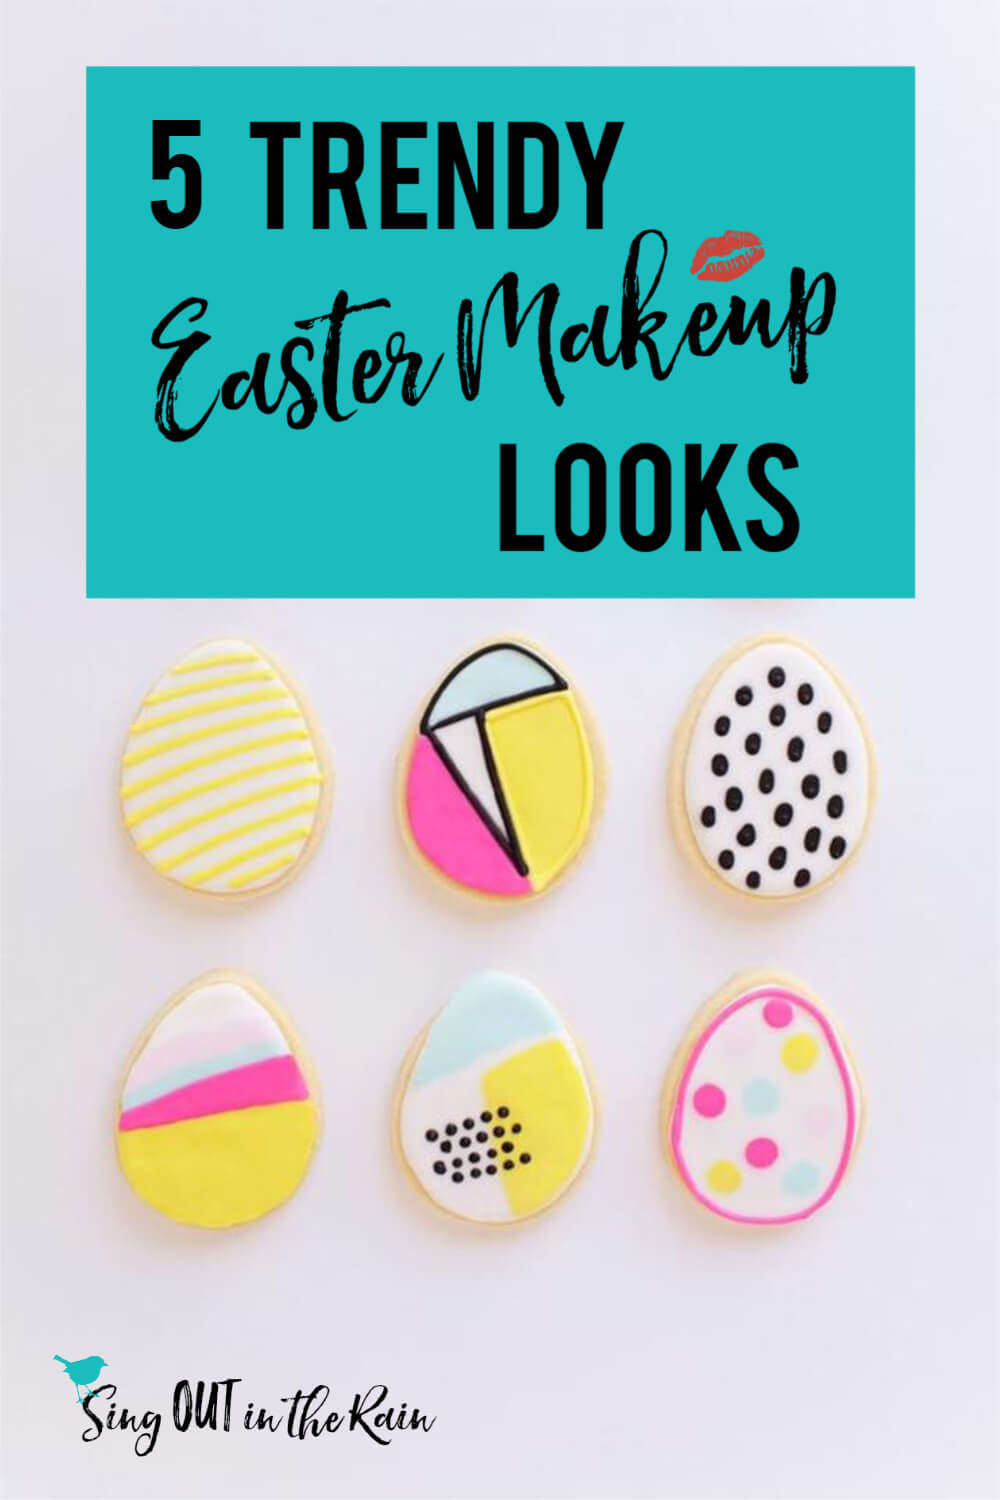 5 Trendy Easter Makeup Looks for Easter Sunday